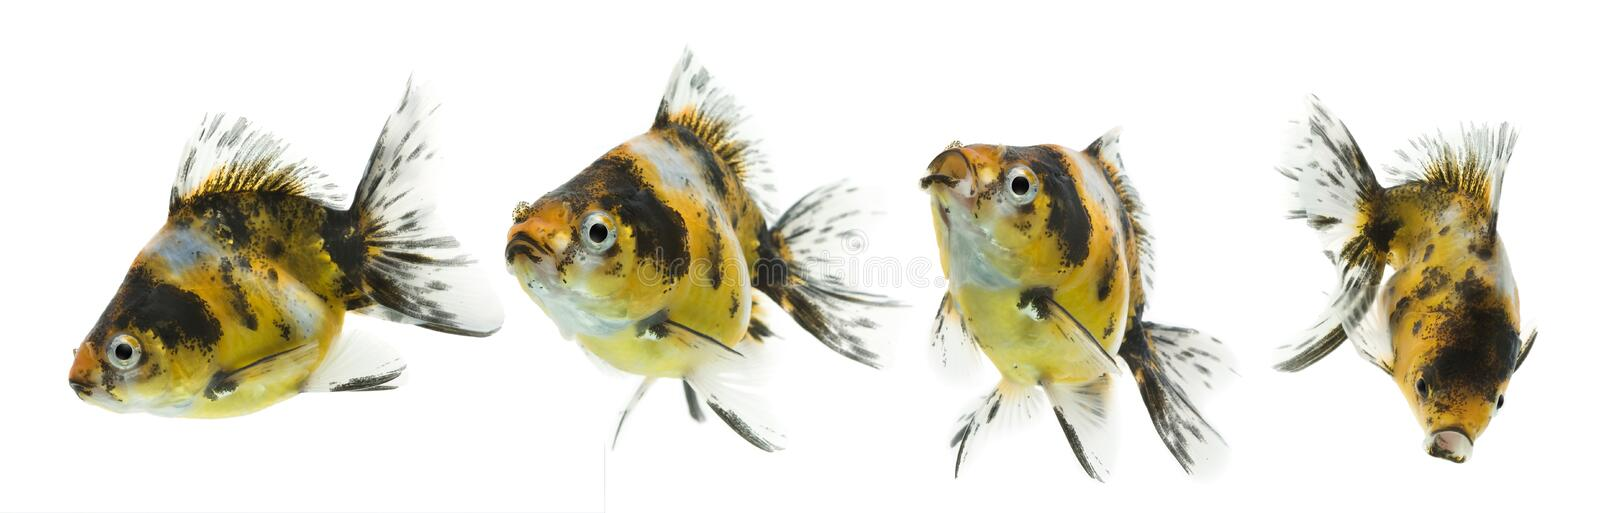 Calico Goldfish Series. Series of calico ryukin goldfish swimming against white background royalty free stock image